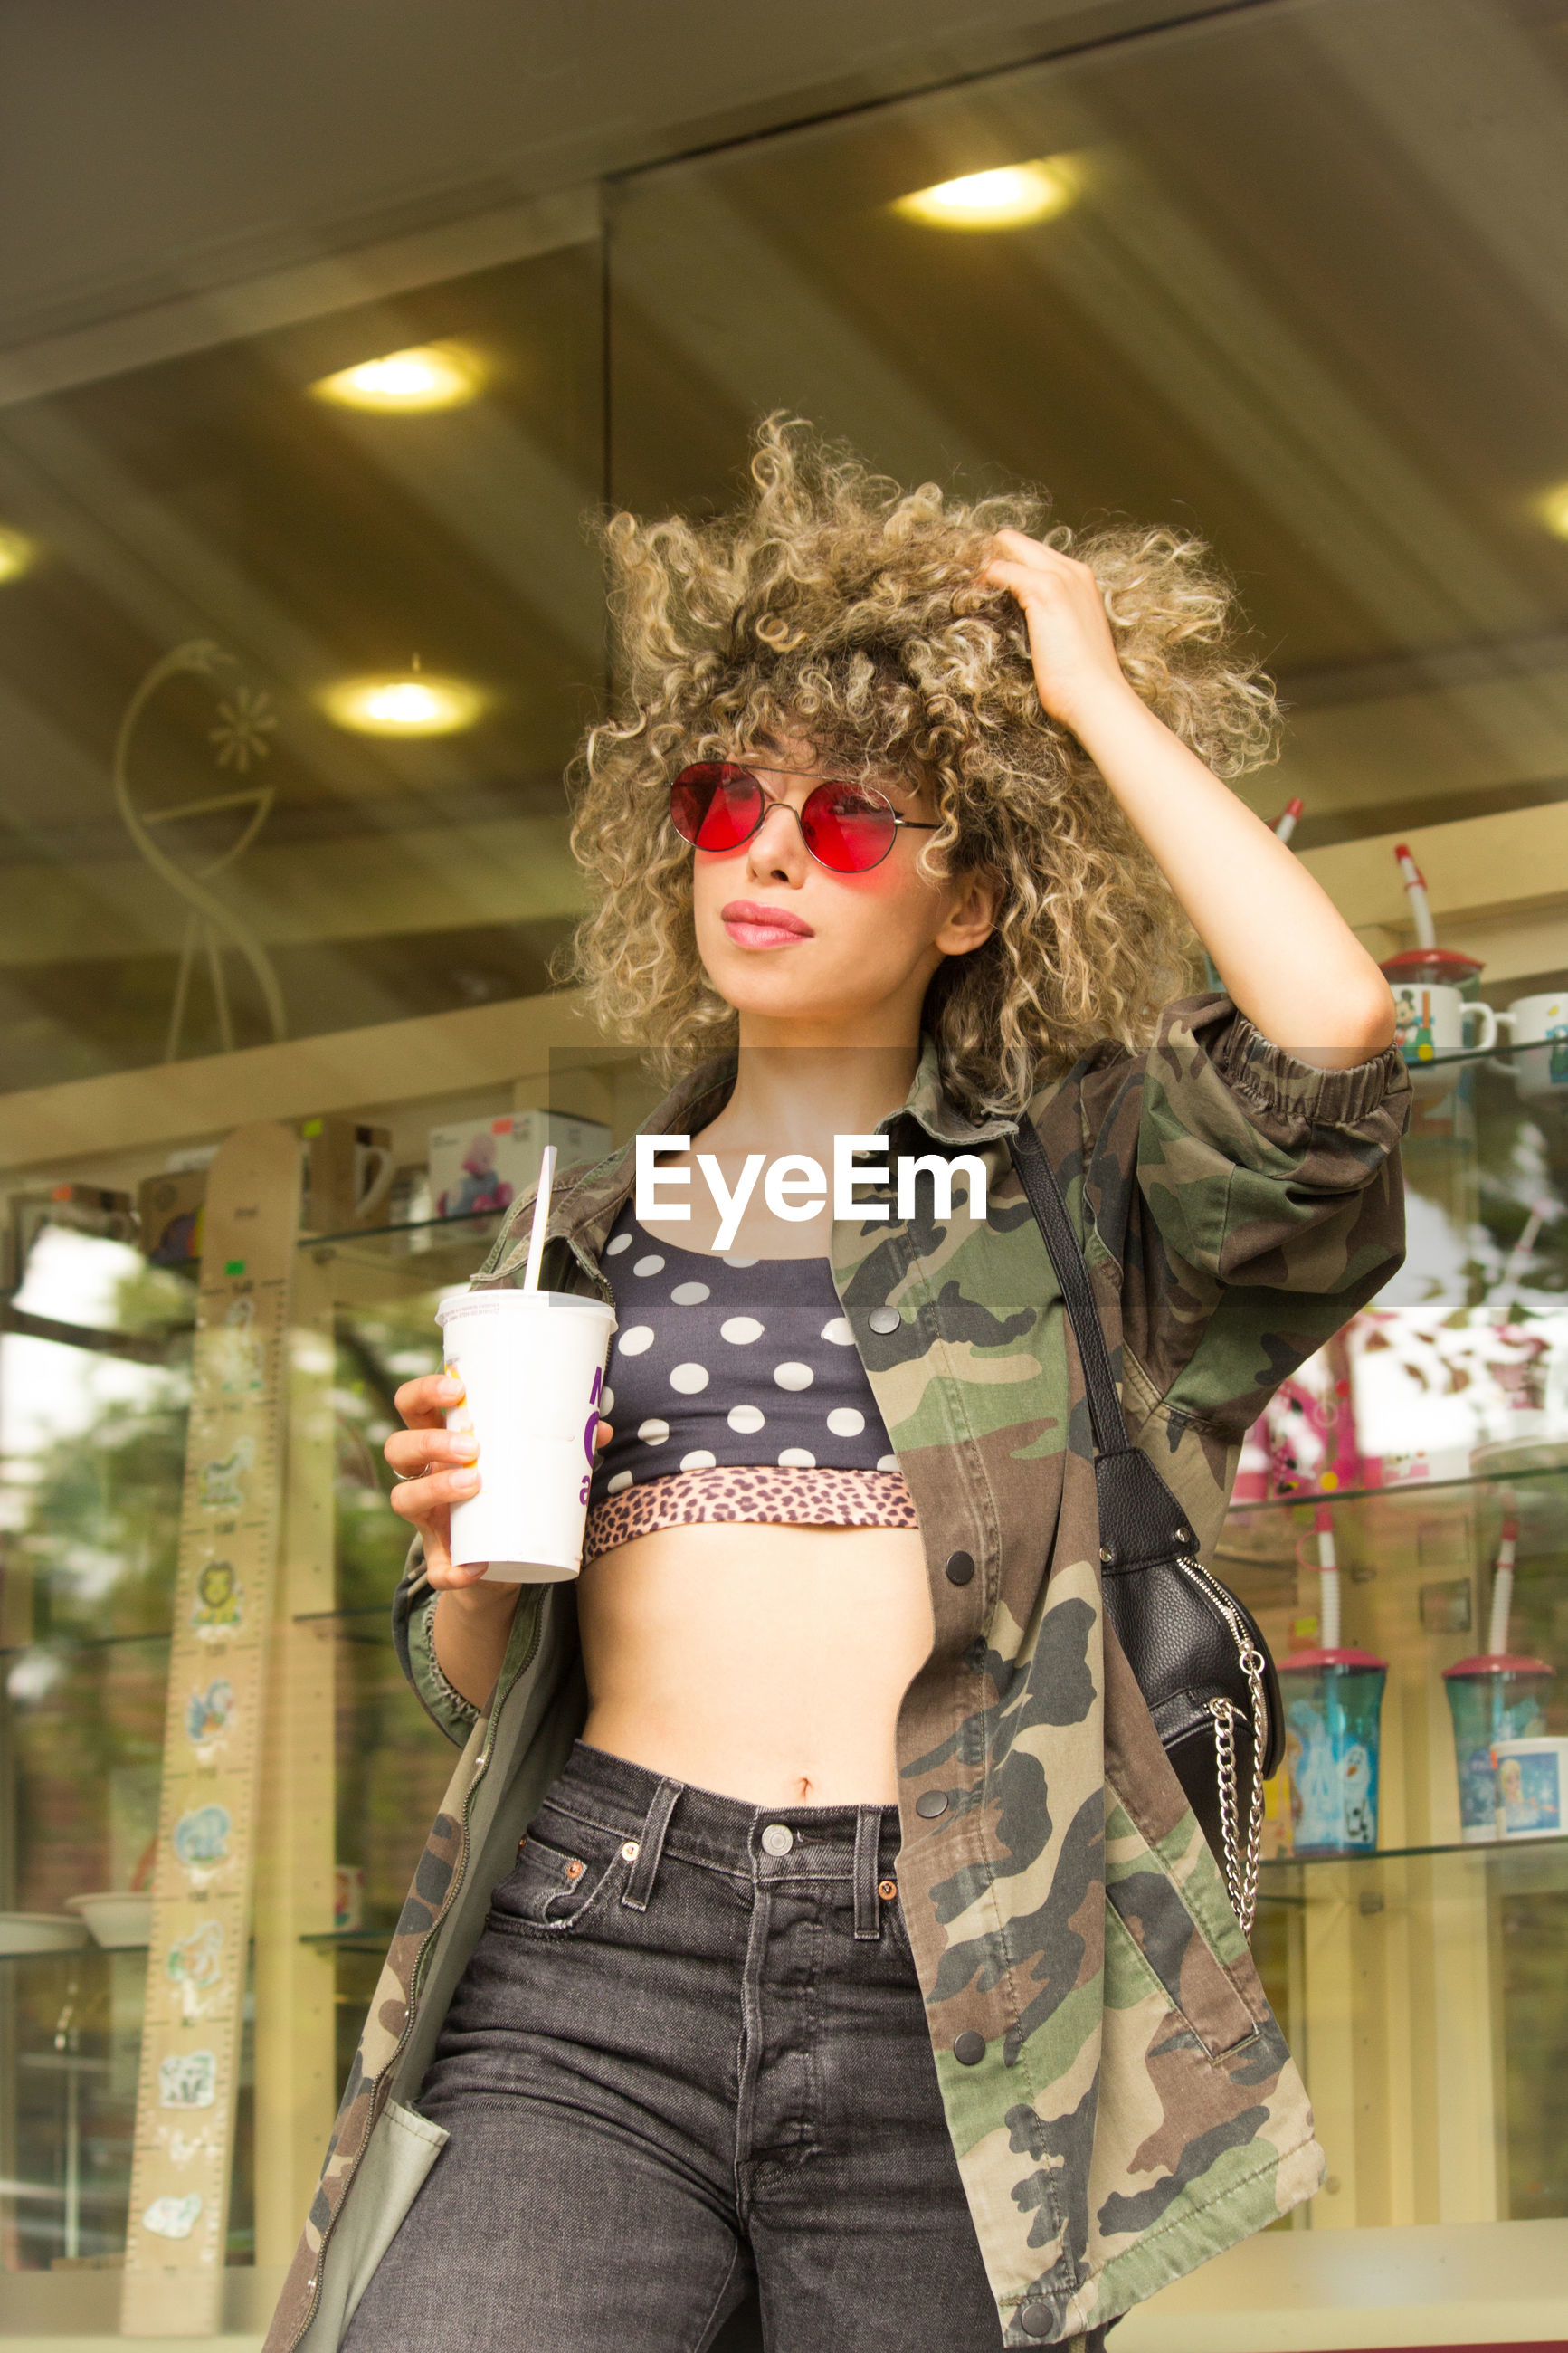 Young woman holding drink while standing against store